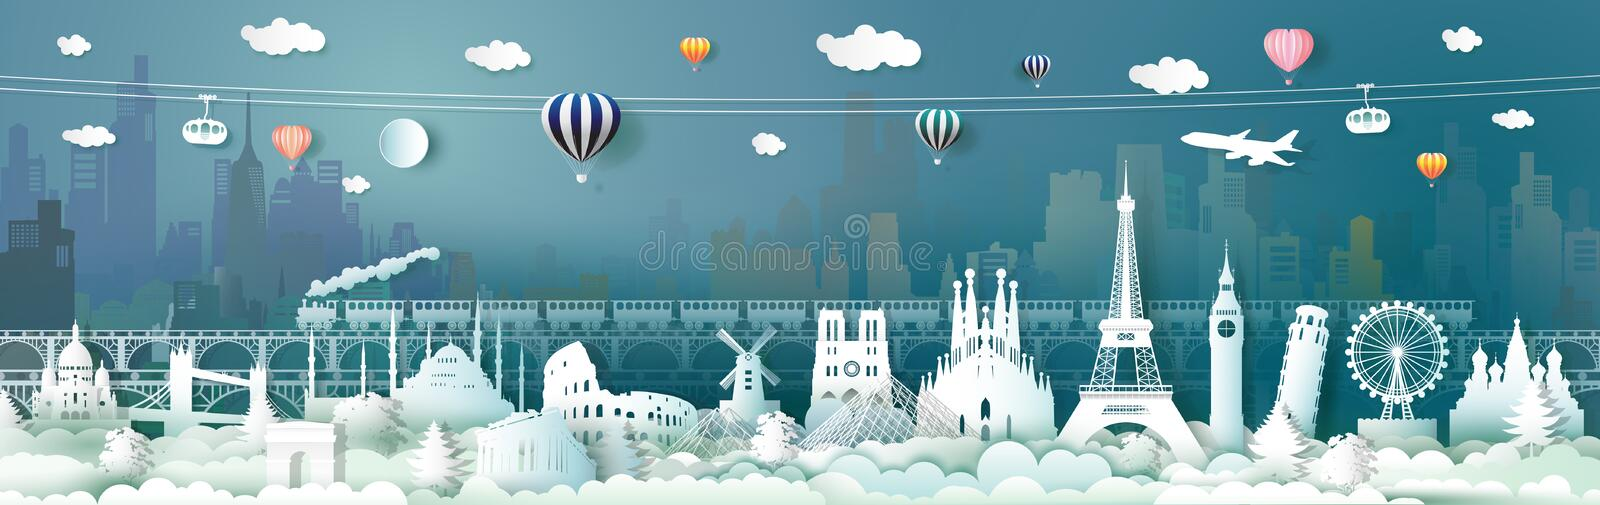 Travel landmarks of Europe with train, balloon. Traveling the world, Famous architecture panorama landmark cityscape, Popular capital, Origami paper cut style vector illustration